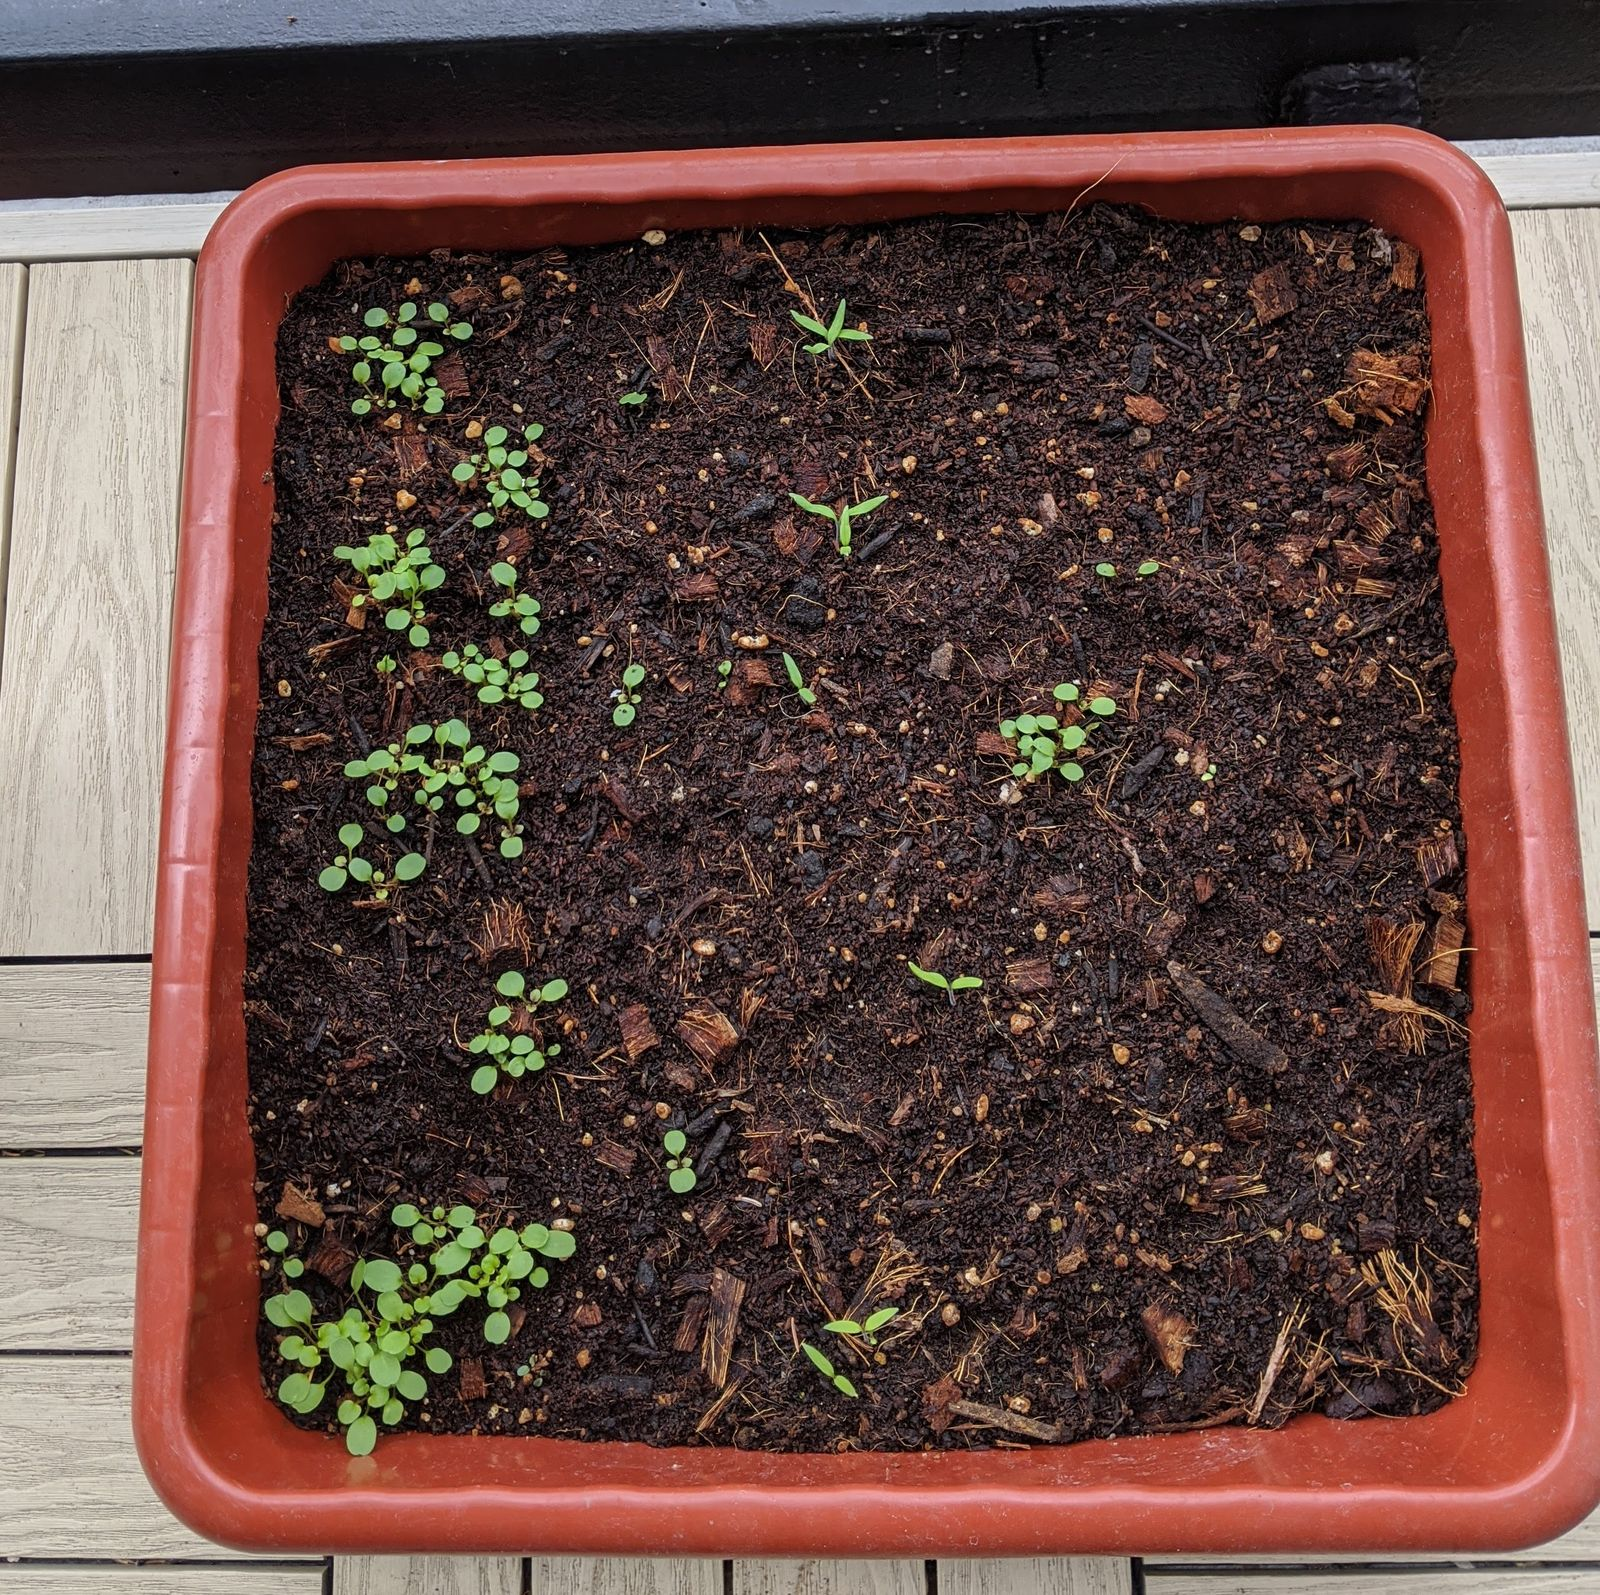 We planted watercress, tomatoes, and basil. But of course we forgot to label them, so at this point, it's just a surprise!